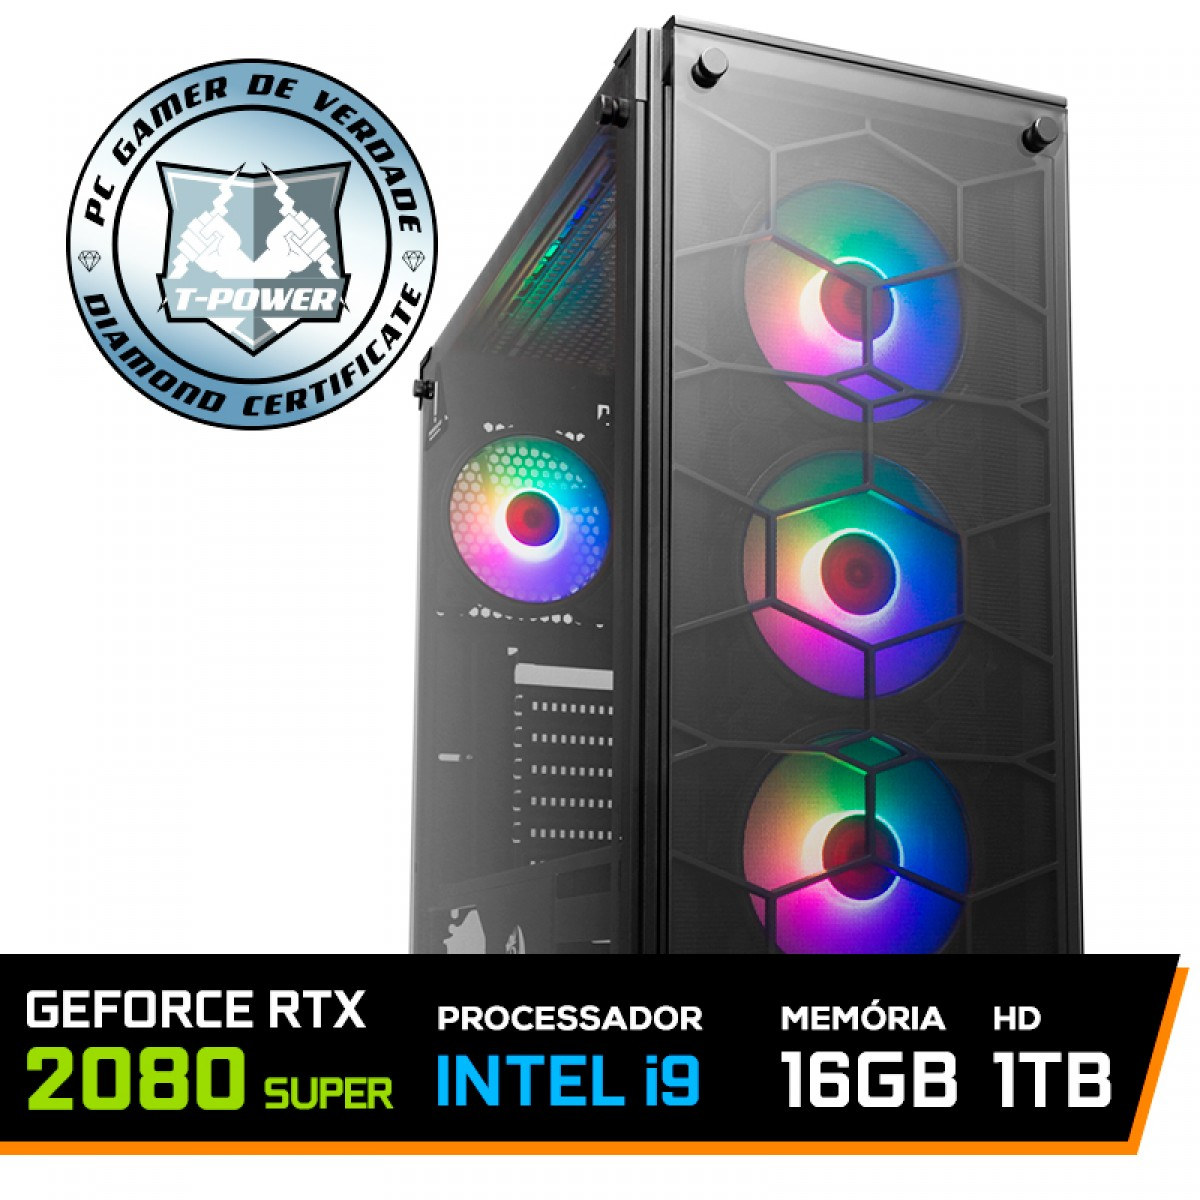 Pc Gamer T-Power Inferno LVL-5 Intel I9 9900K 3.60GHz / Geforce RTX 2080 Super / DDR4 16GB / HD 1TB / 750W